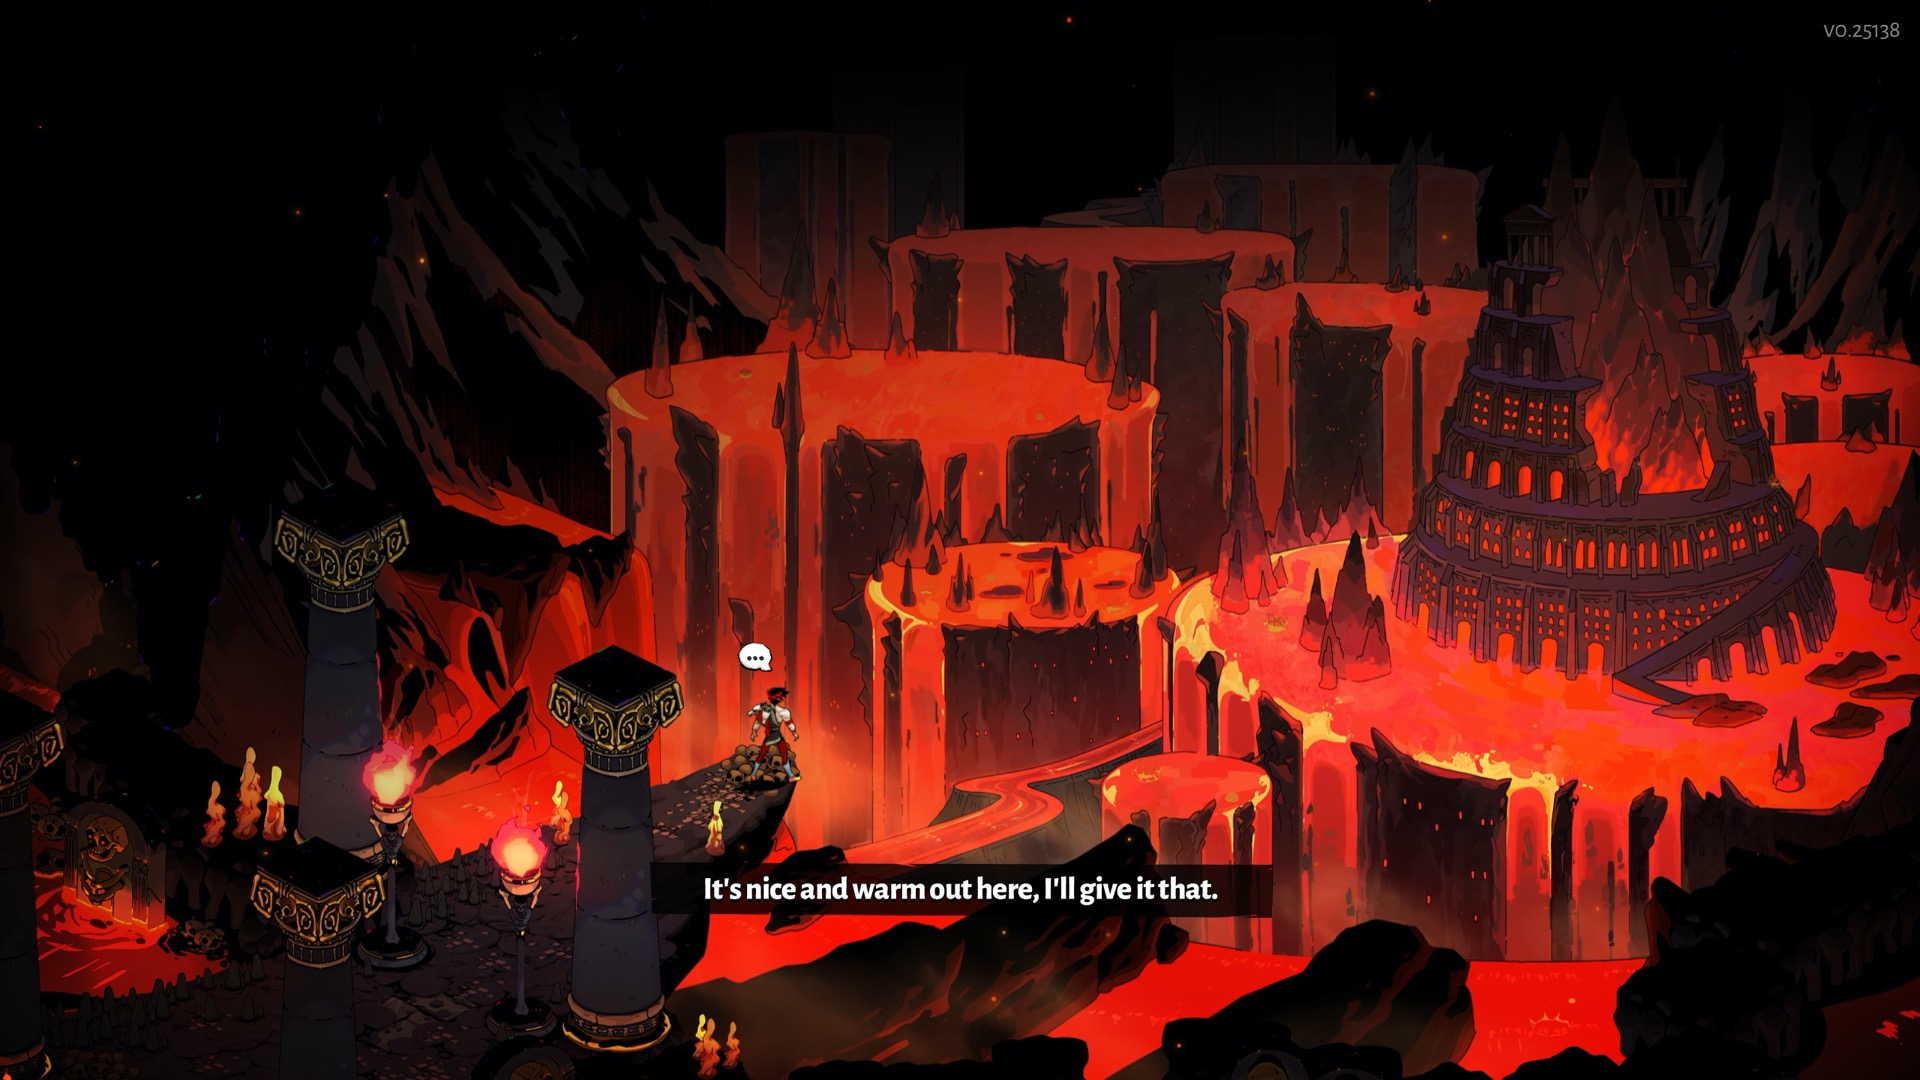 Zagreus stands looking over one of the levels of the underworld, a mass of towering pools of lava running in waterfalls down the sides of rock pillars.